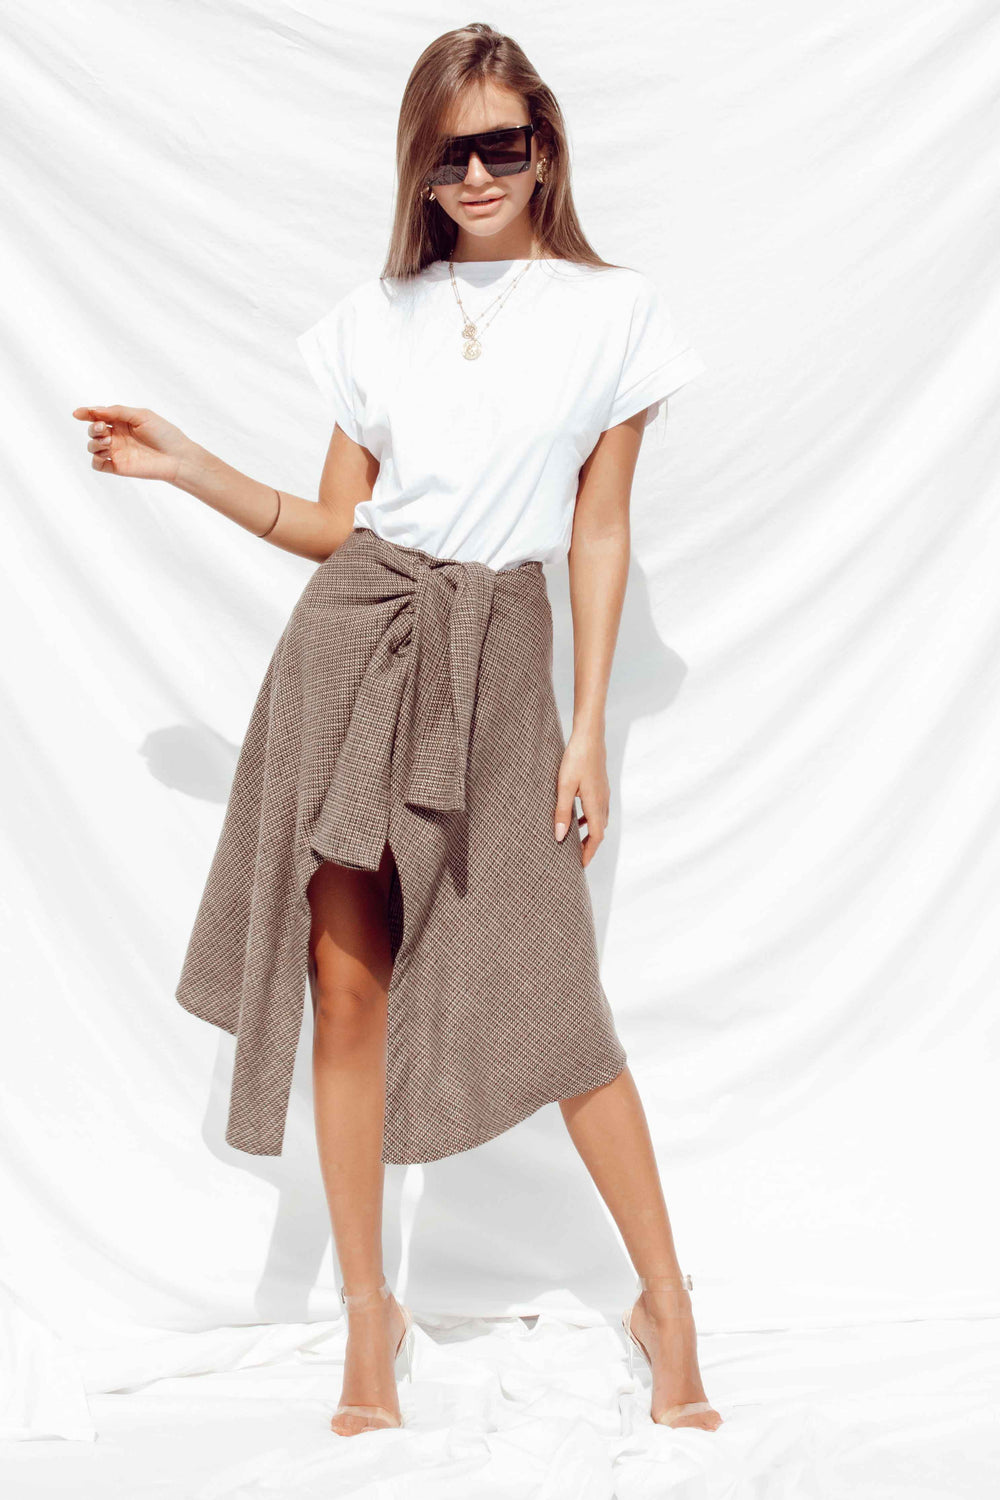 ZUMI SKIRT - Chic Le Frique